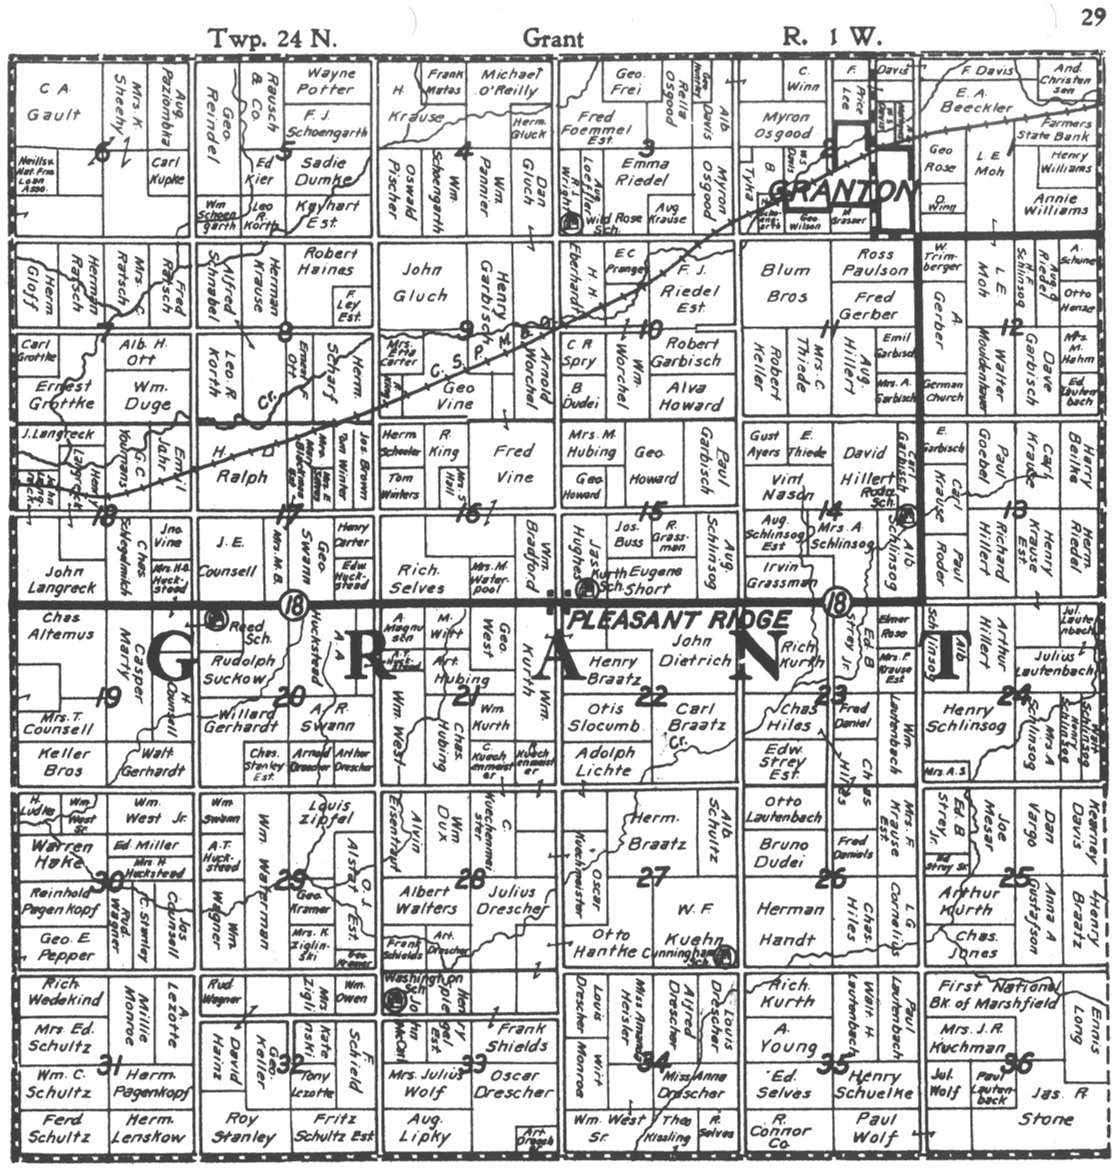 Kurth and roder schools section 15 of 1926 grant plat map sciox Gallery